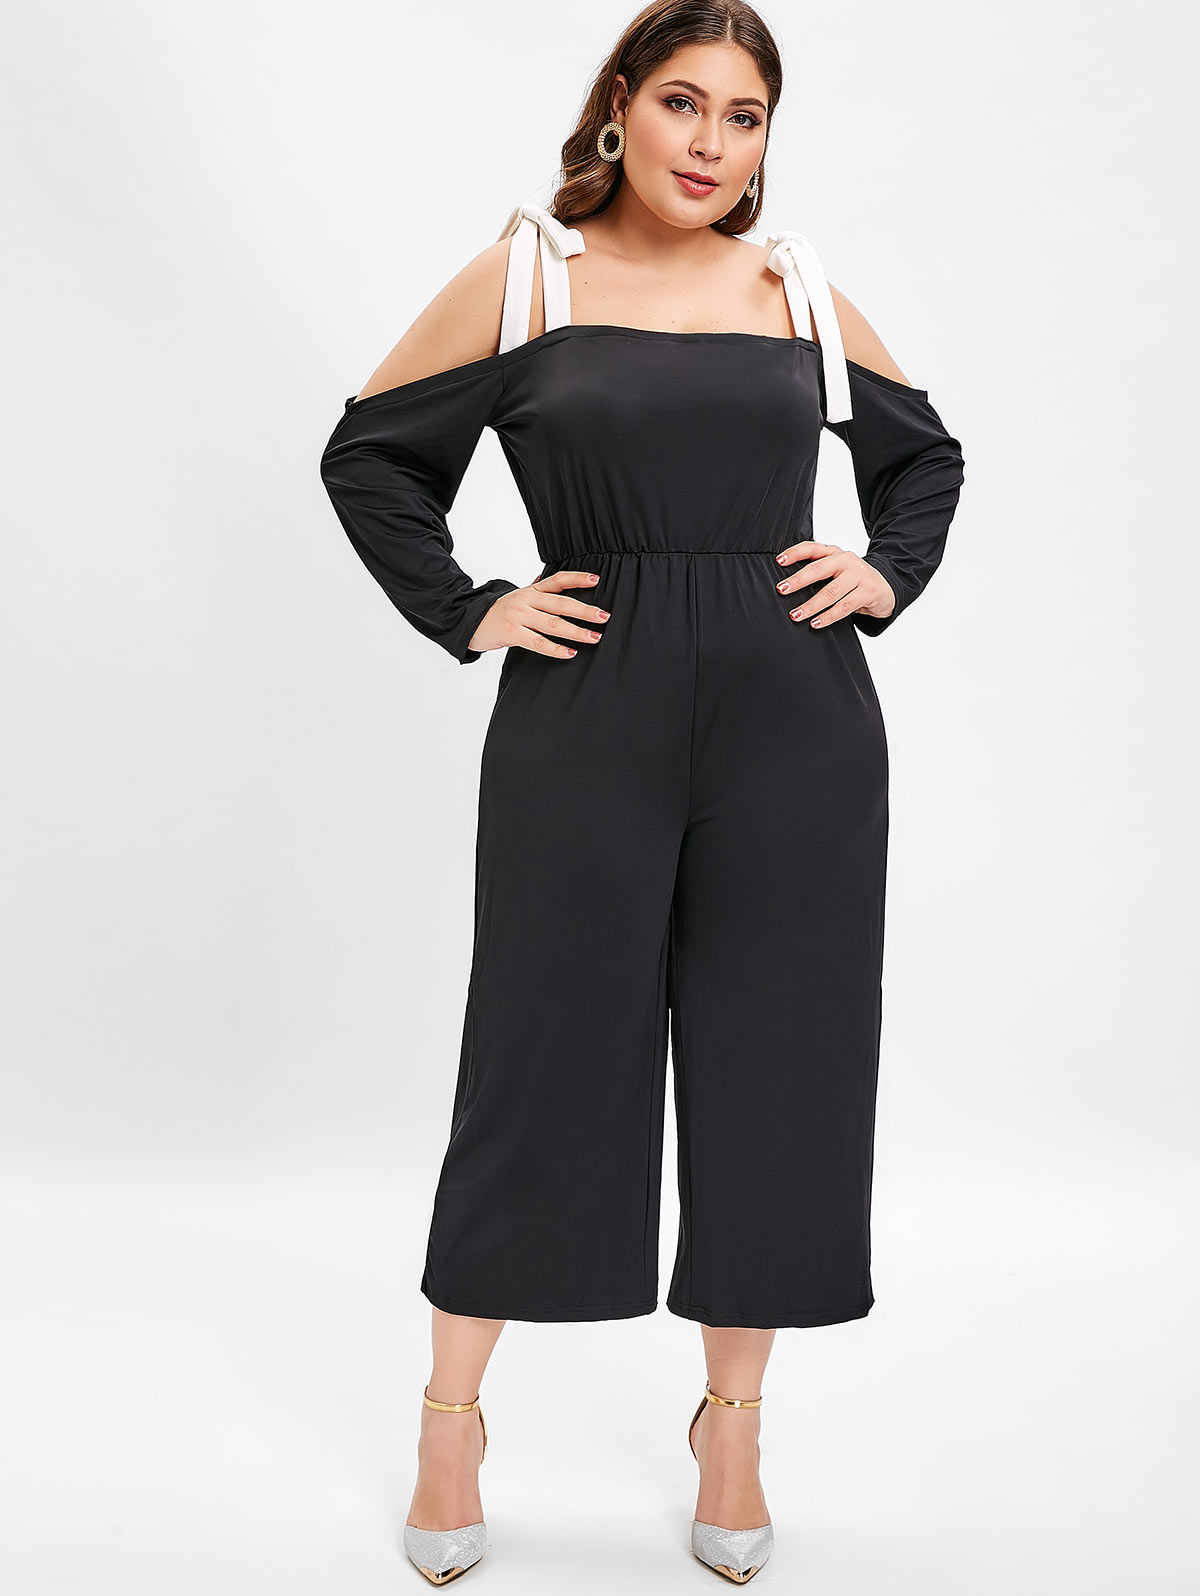 Wipalo Women Plus Size Open Shoulder Bow Tie Jumpsuit Long Sleeves Wide Legs Casual Solid Jumpsuit Spring Summer Ladies Romper